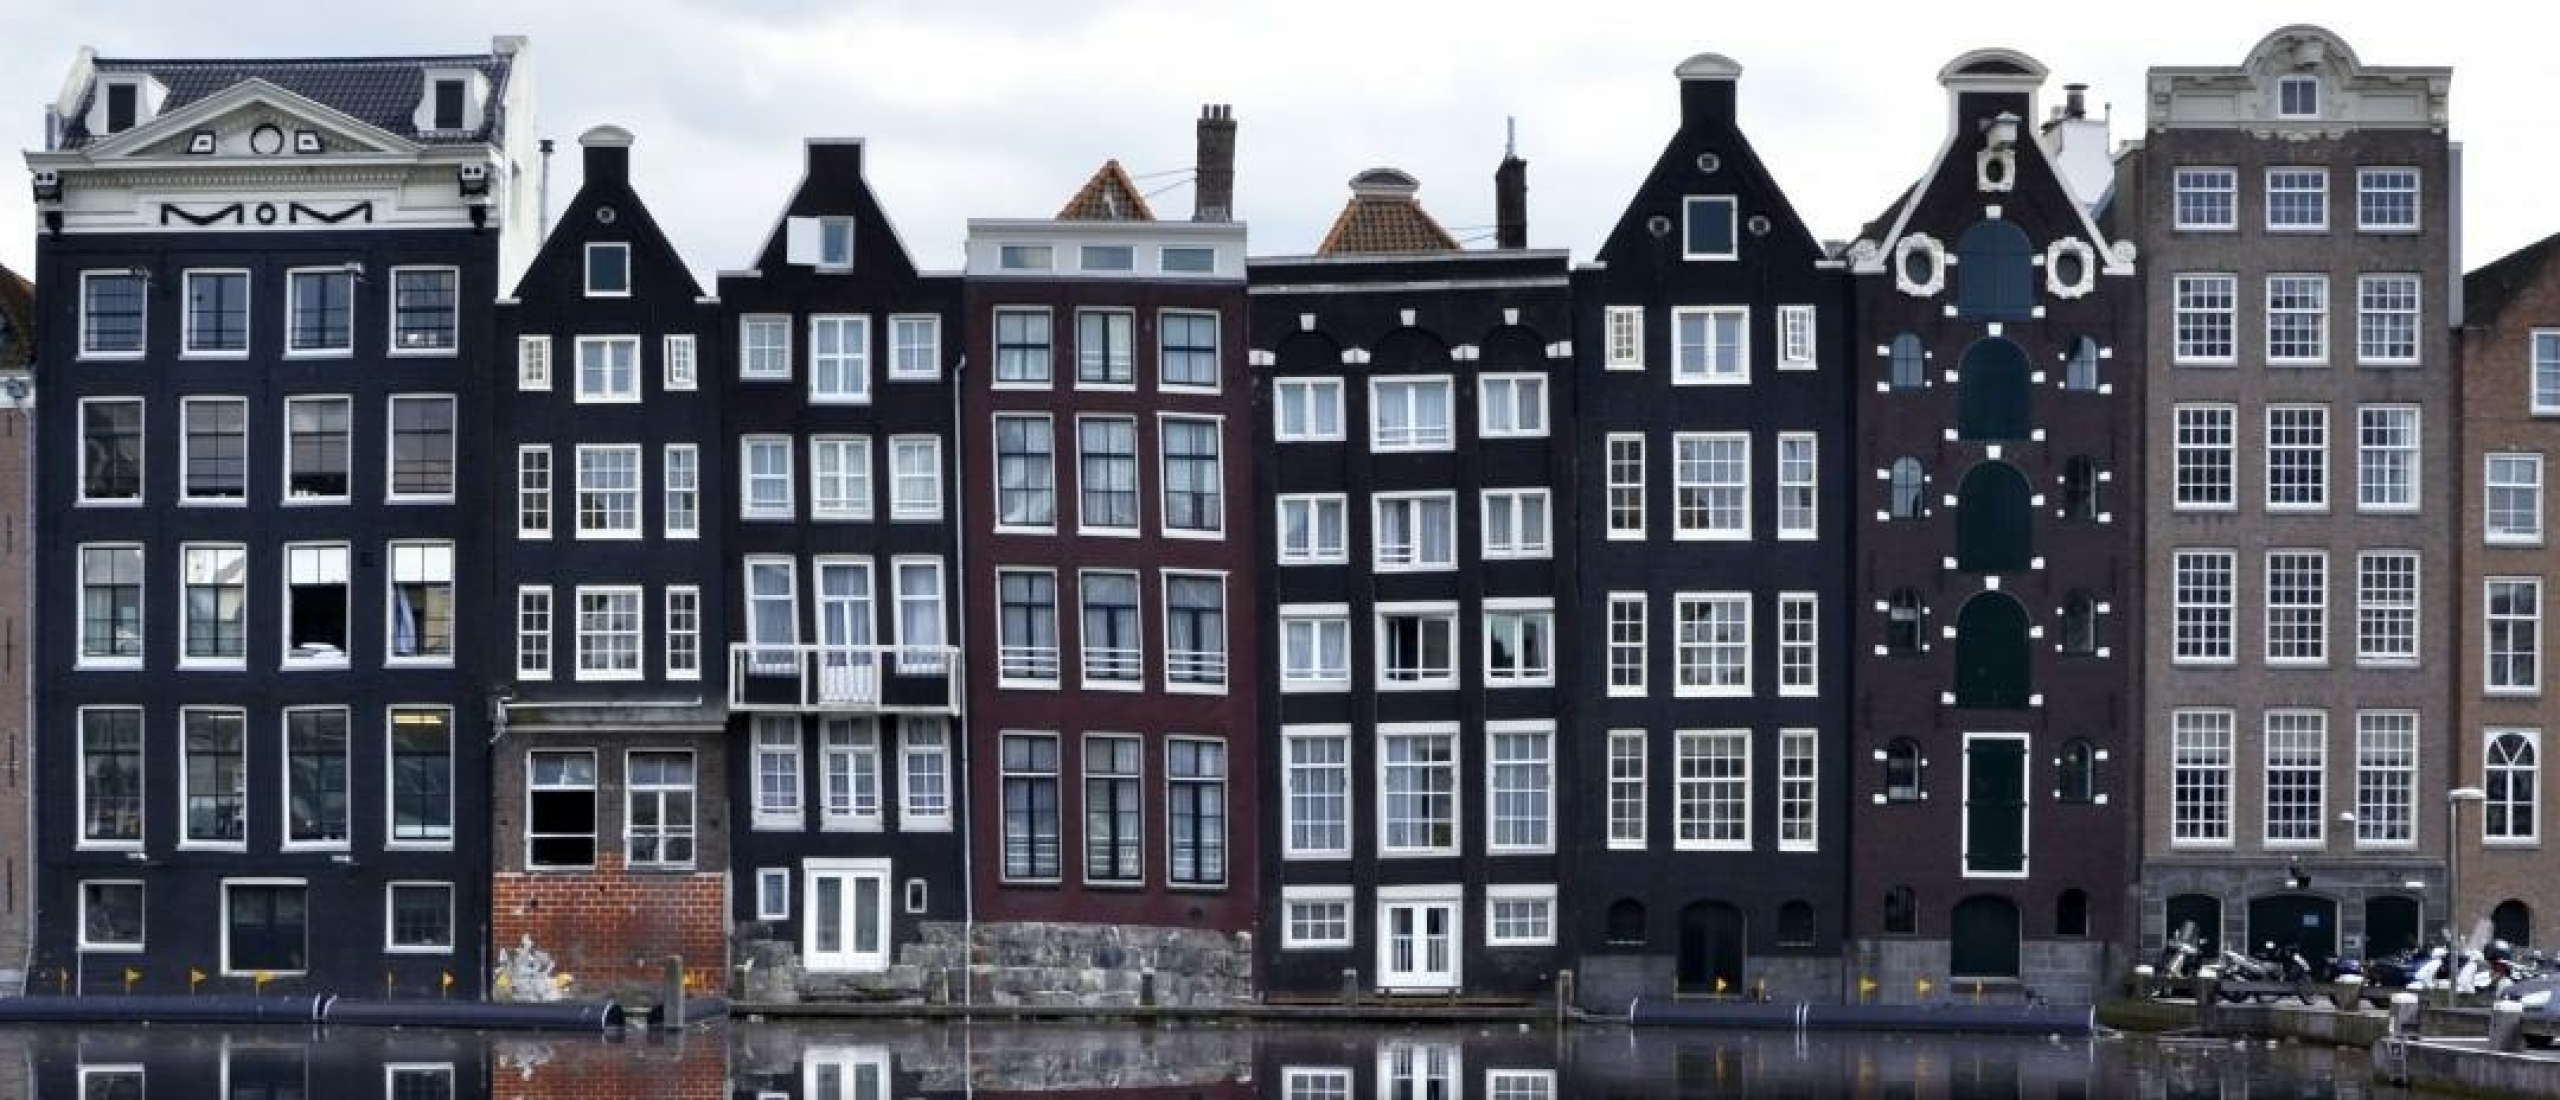 8 Things You Need to Know Before Visiting the Netherlands